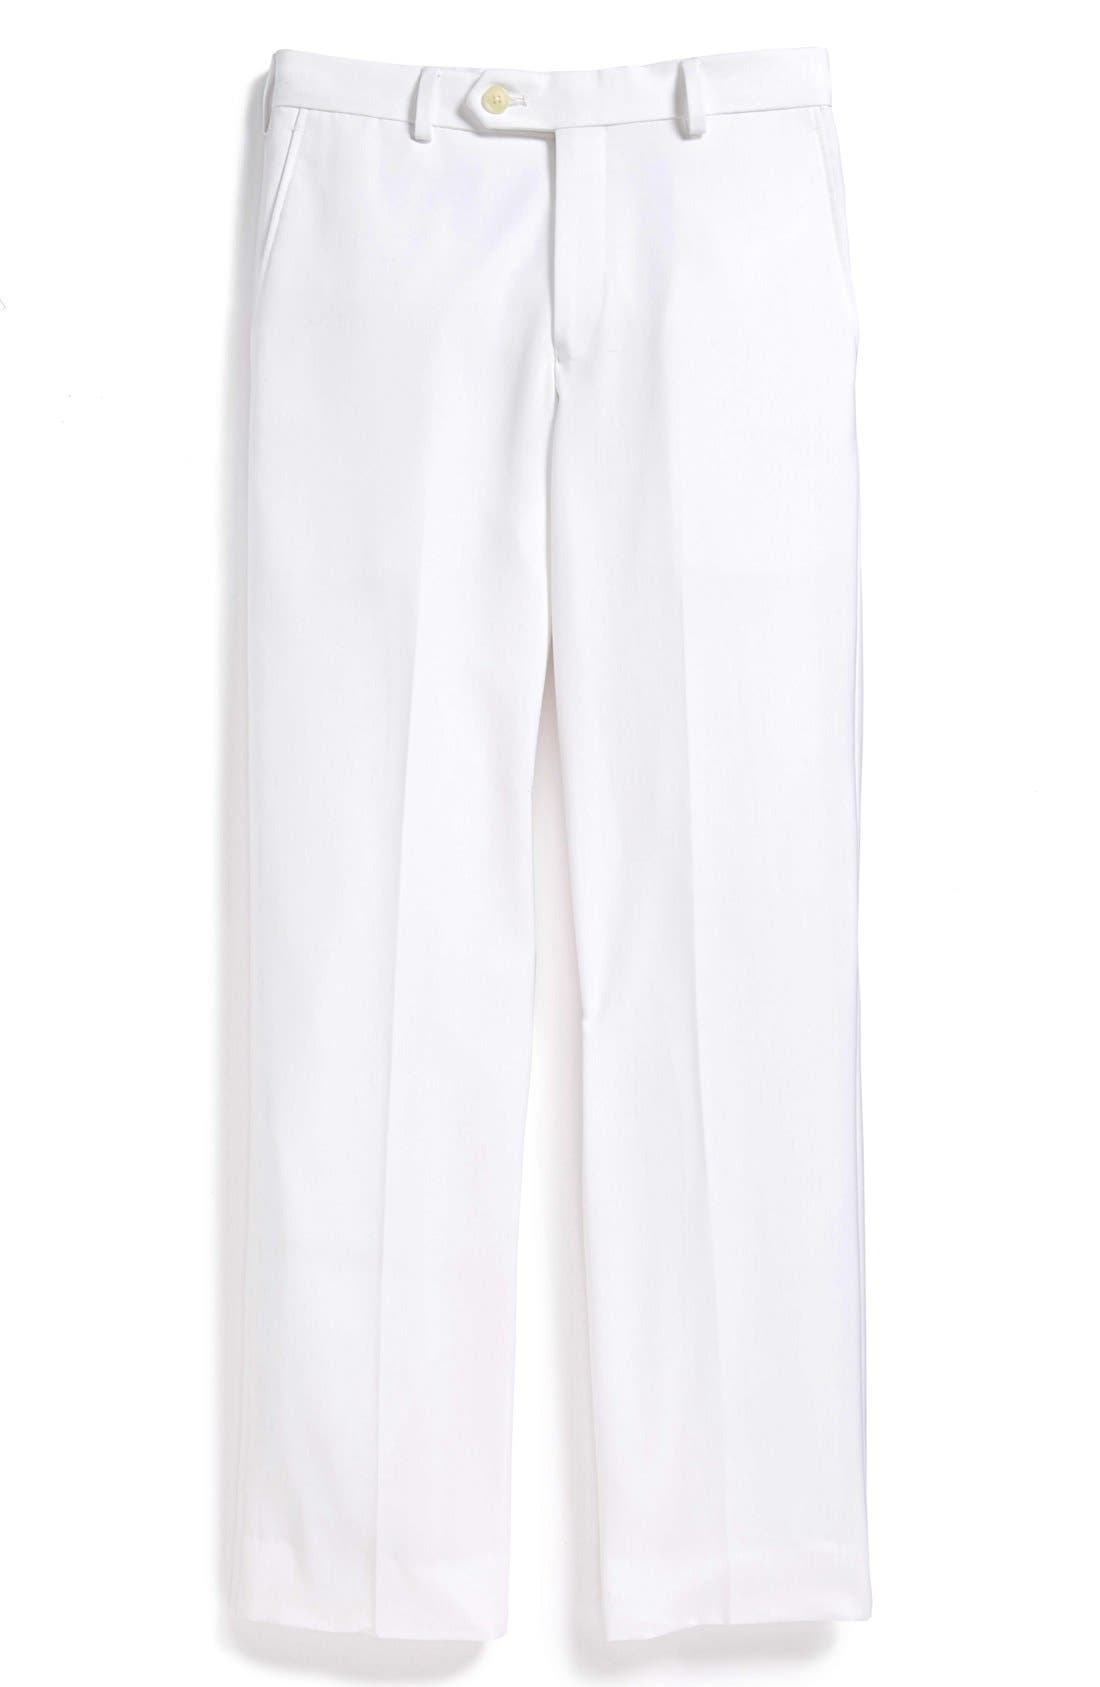 Main Image - Nordstrom Flat Front Trousers (Little Boys, Big Boys & Husky)